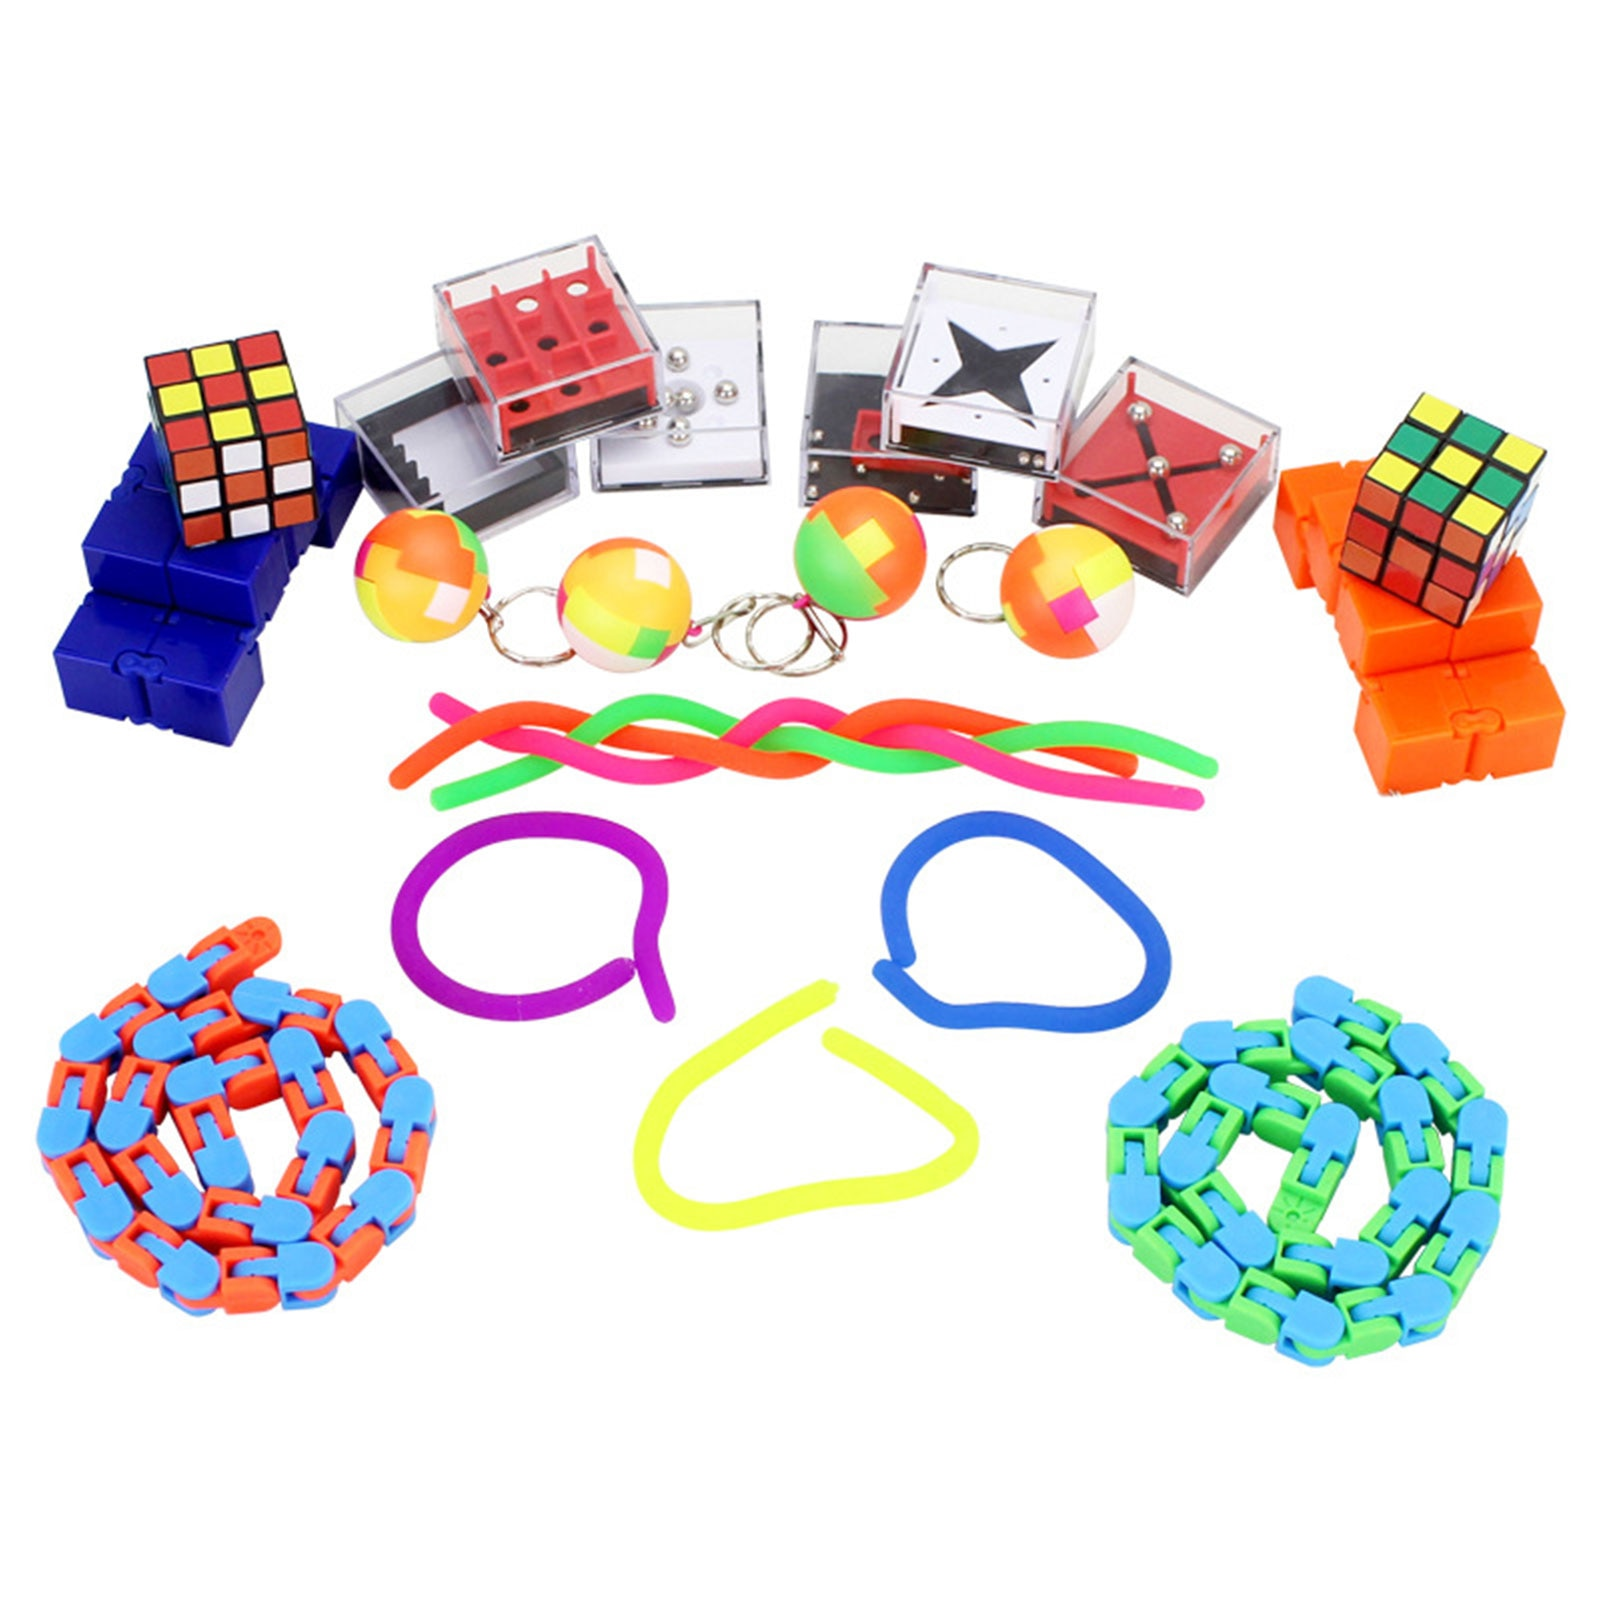 24 Pcs Sensory Toy Set Calm Toys And Stress Relief Toys For People With Add Or ADHD And OCD Or High Stress/Anxiety Levels enlarge